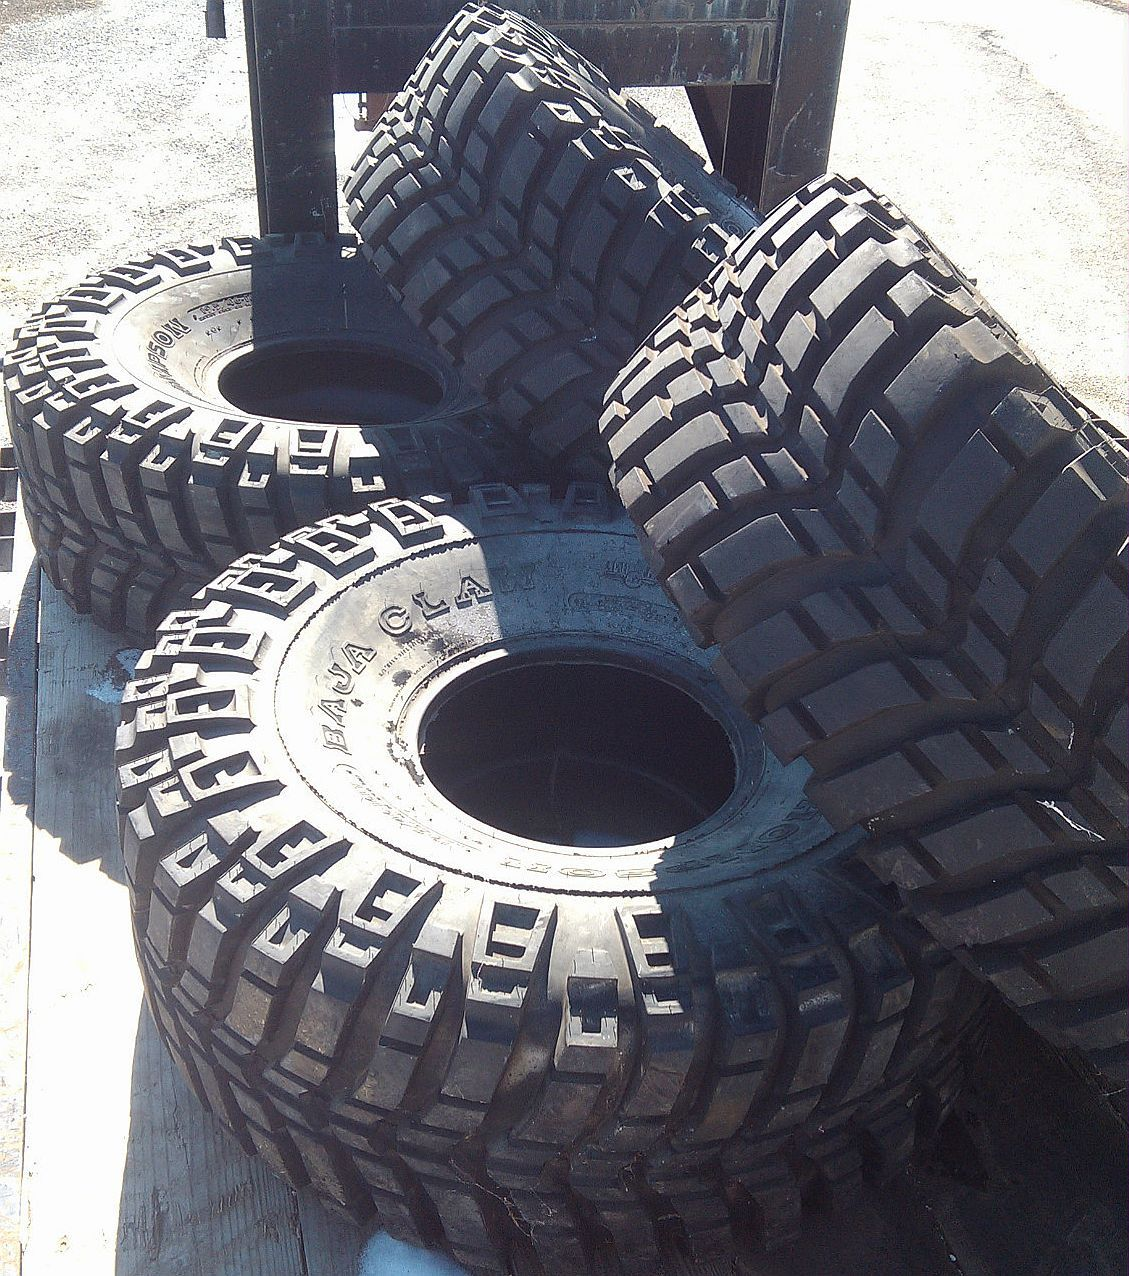 Mickey Thompson Baja Claw Tires 46 19 5 16 Used Truck Mud Rock Crawler Tires Truck Accessories Truck Tyres Hunting Truck